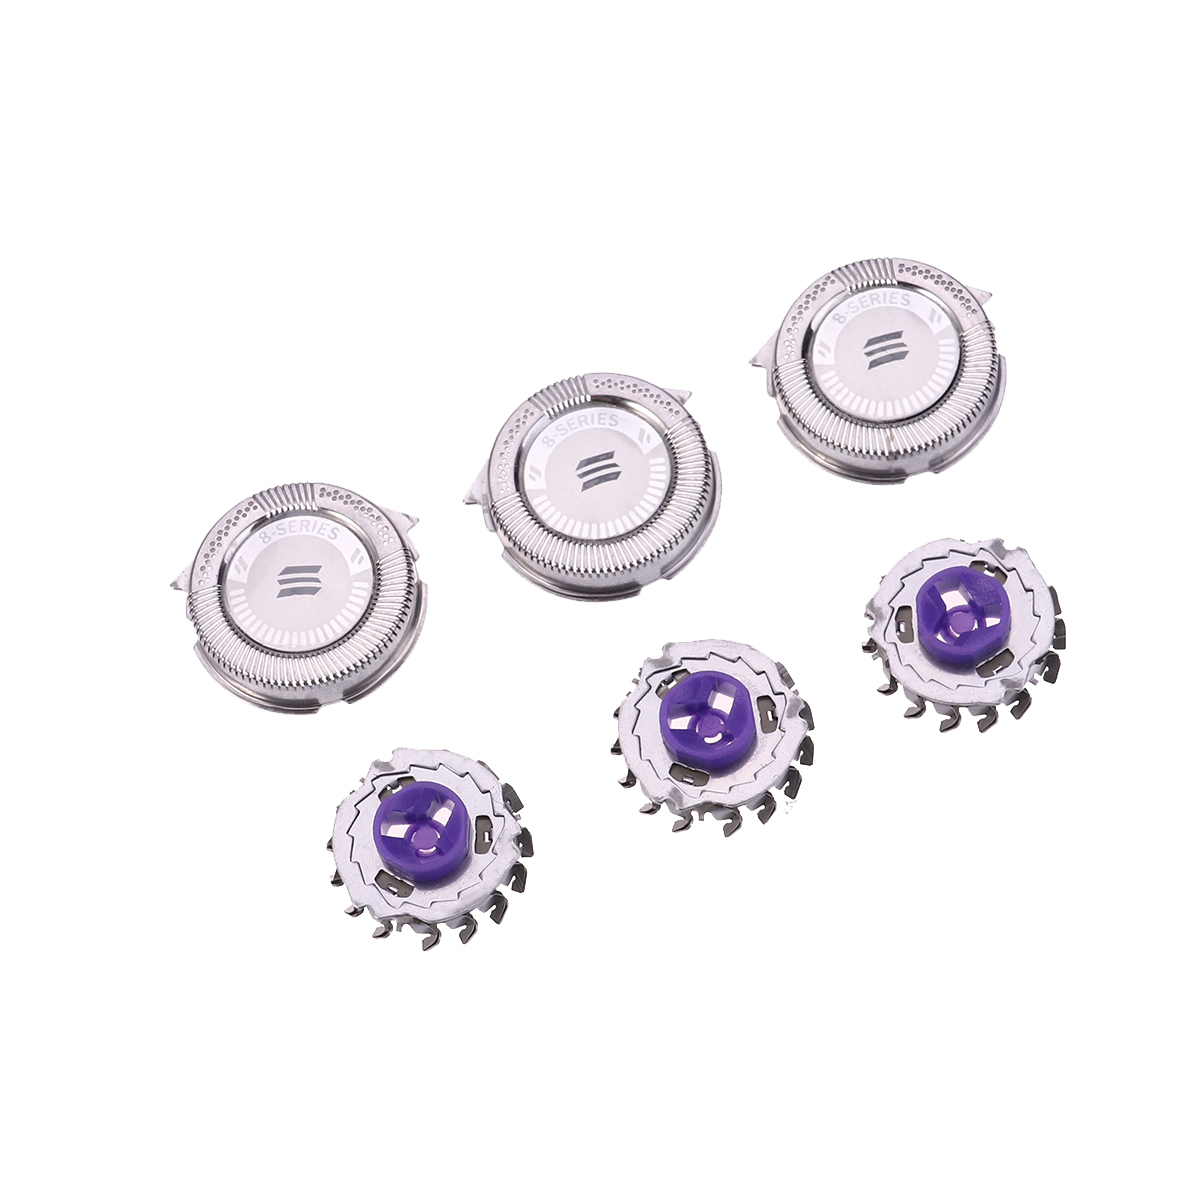 Replacement Heads for Philips Norelco HQ8 / HQ8894 / HQ7160 Shavers 3pcs (Silver)